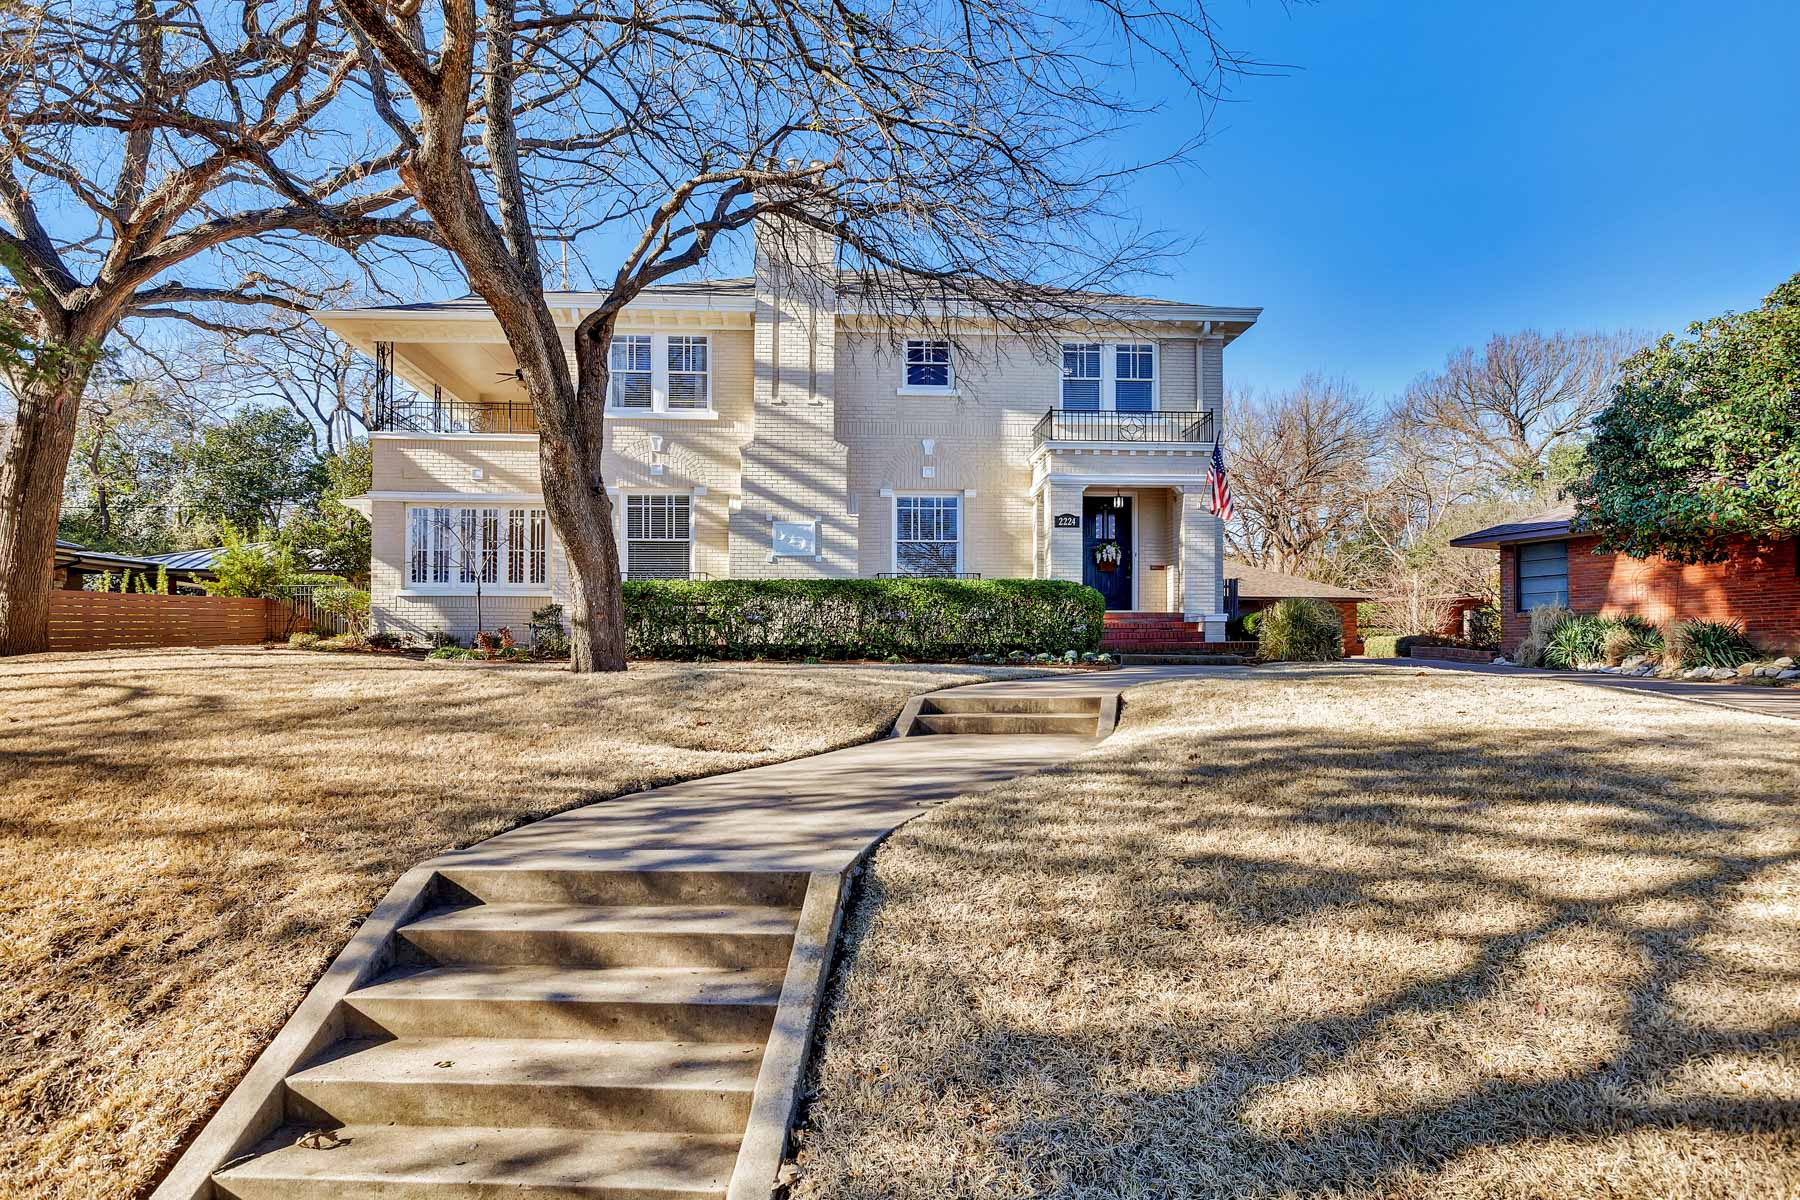 Maison unifamiliale pour l Vente à 2224 Winton Terrace E, Fort Worth Fort Worth, Texas, 76109 États-Unis